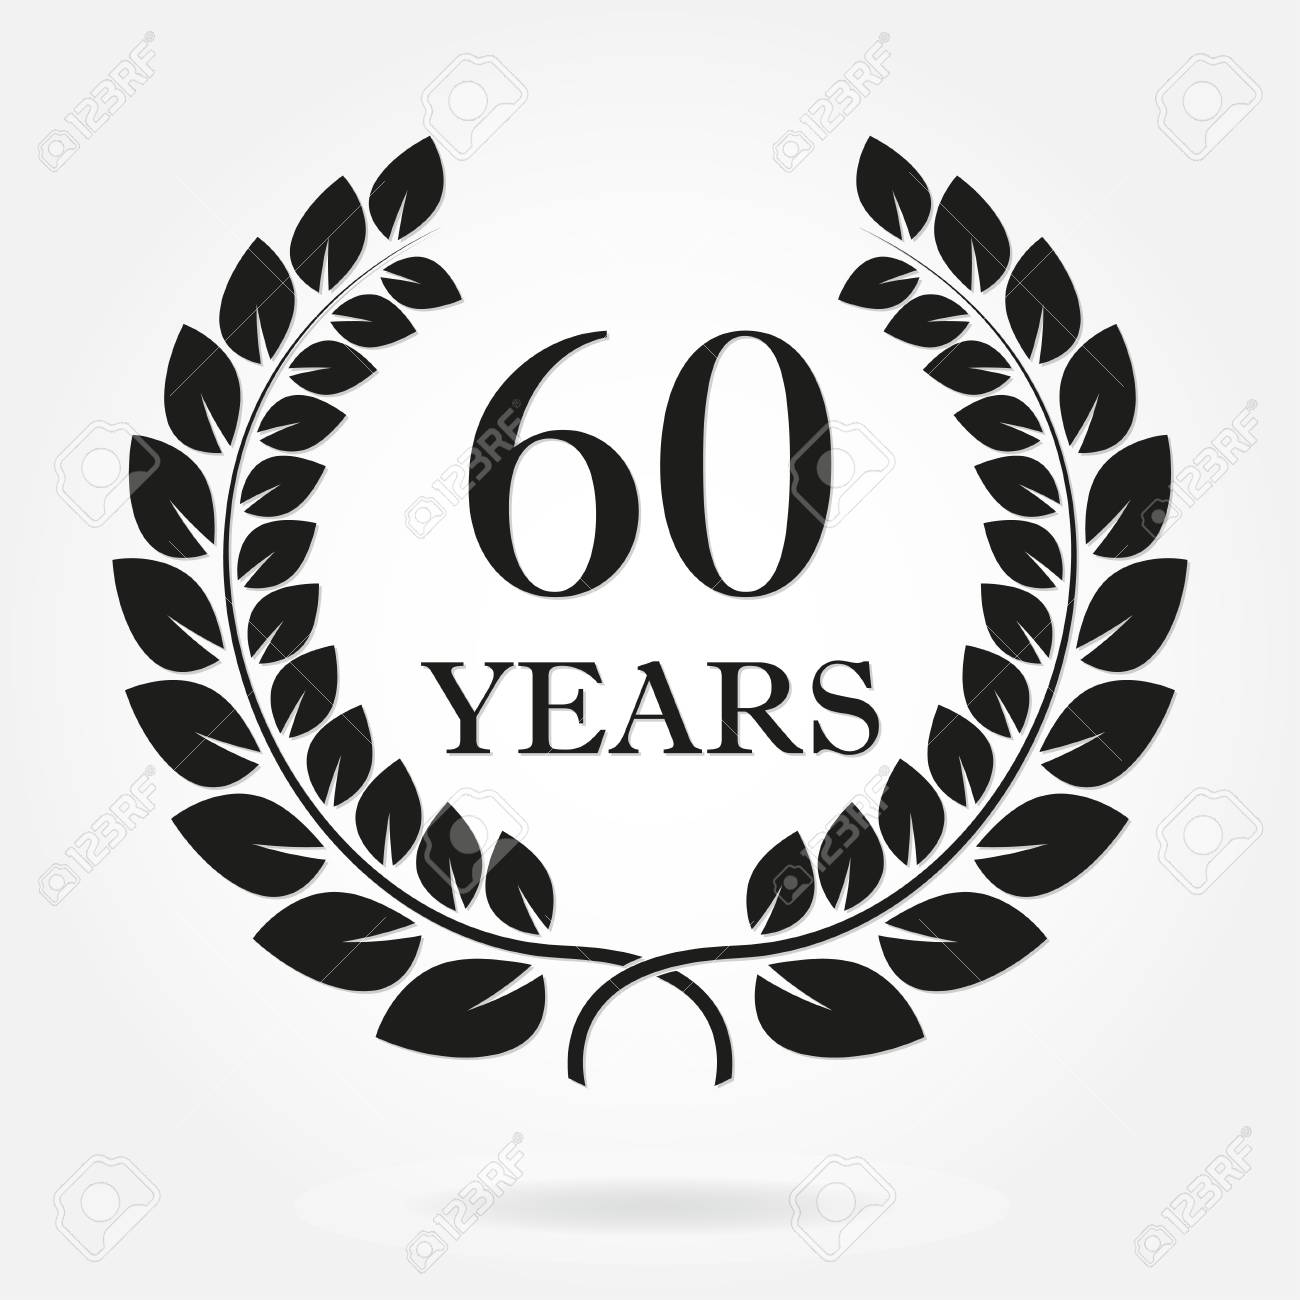 60 Years Anniversary Laurel Wreath Sign Or Emblem Template For